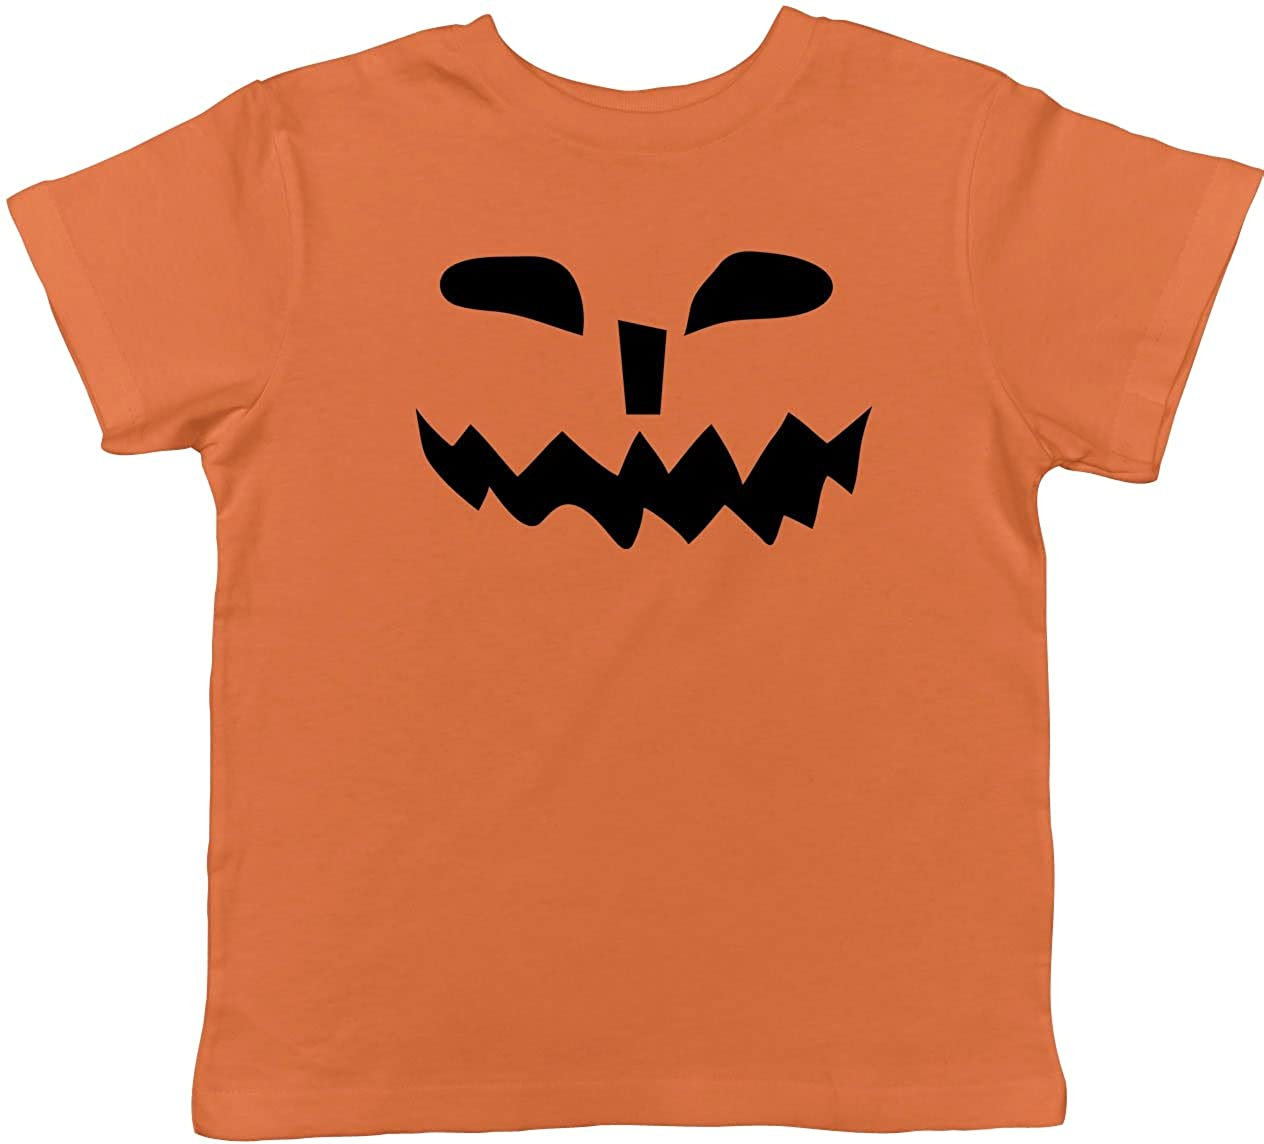 Toddler Spikey Teeth Pumpkin Face Funny Fall Halloween Spooky T Shirt Crazy Dog Tshirts 016SpikeyTeethPumpkTOD